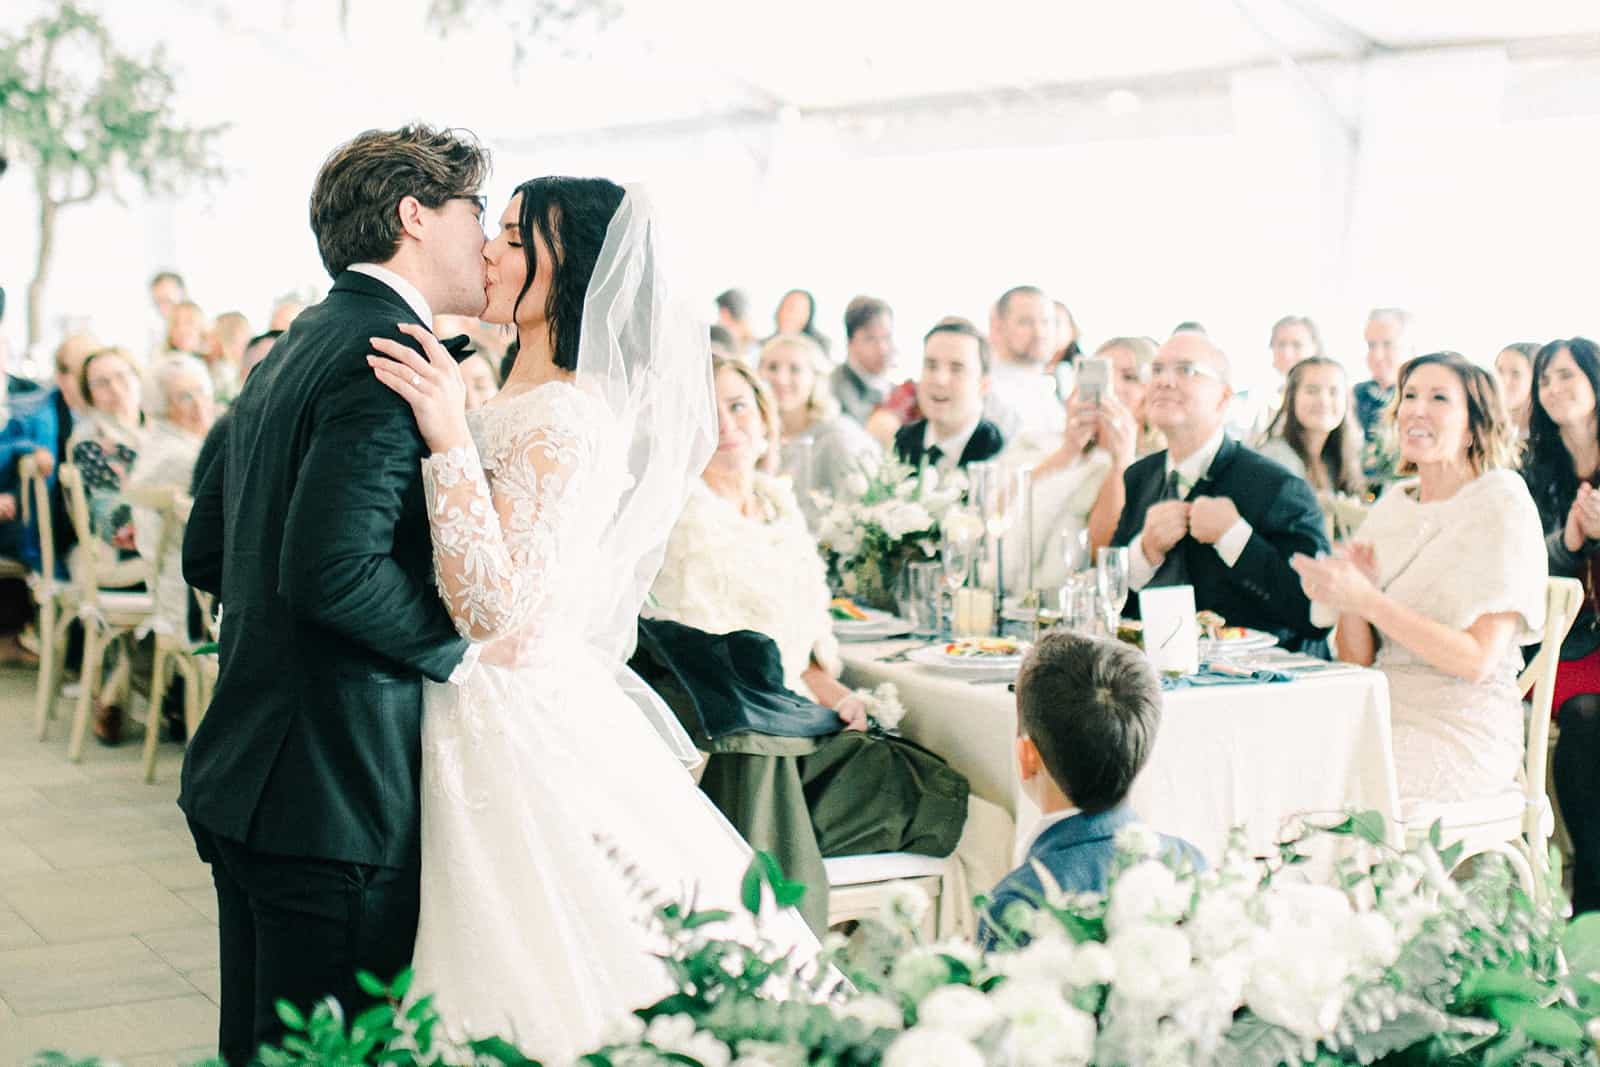 Luxury winter wedding at Willowbridge Estate in Boise, Idaho, bride and groom first kiss after ceremony